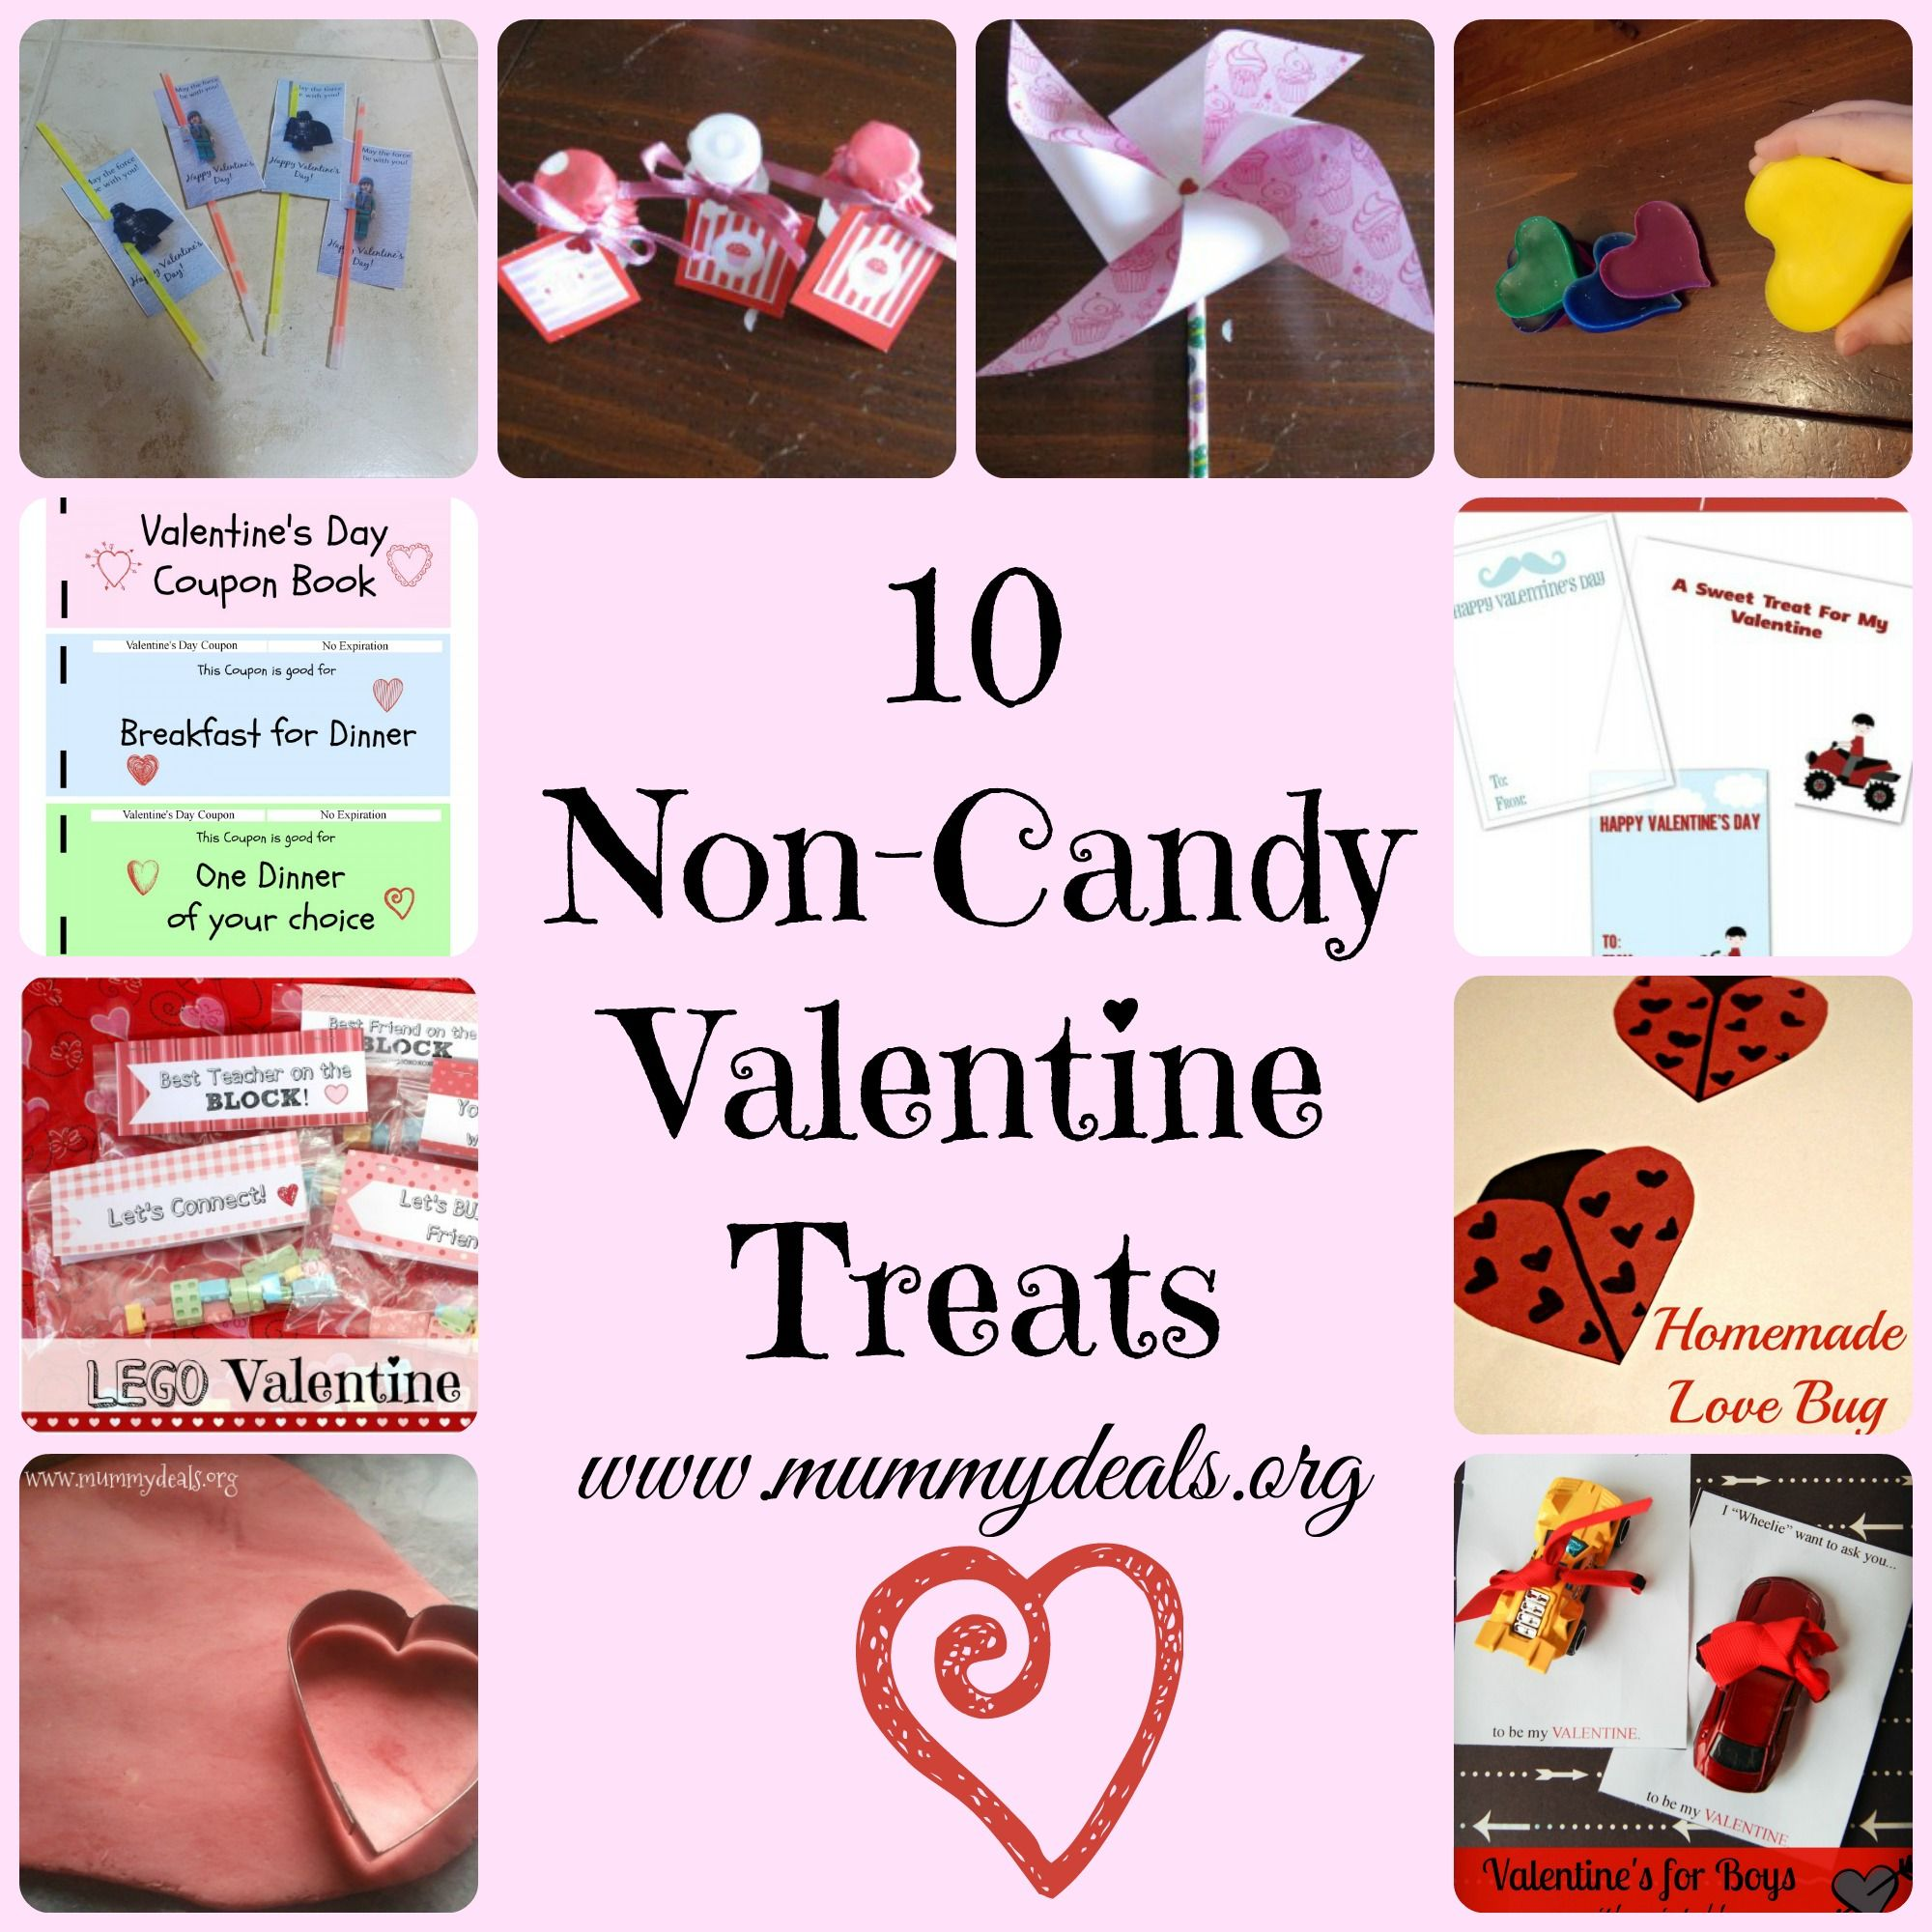 Schön Has Your School Banned Candy Or You Donu0027t Want To Give It? No Problem! This  List Of 10 Non Candy Valentine Treats From @ Mummy Deals Comes From A Mom  Who ...